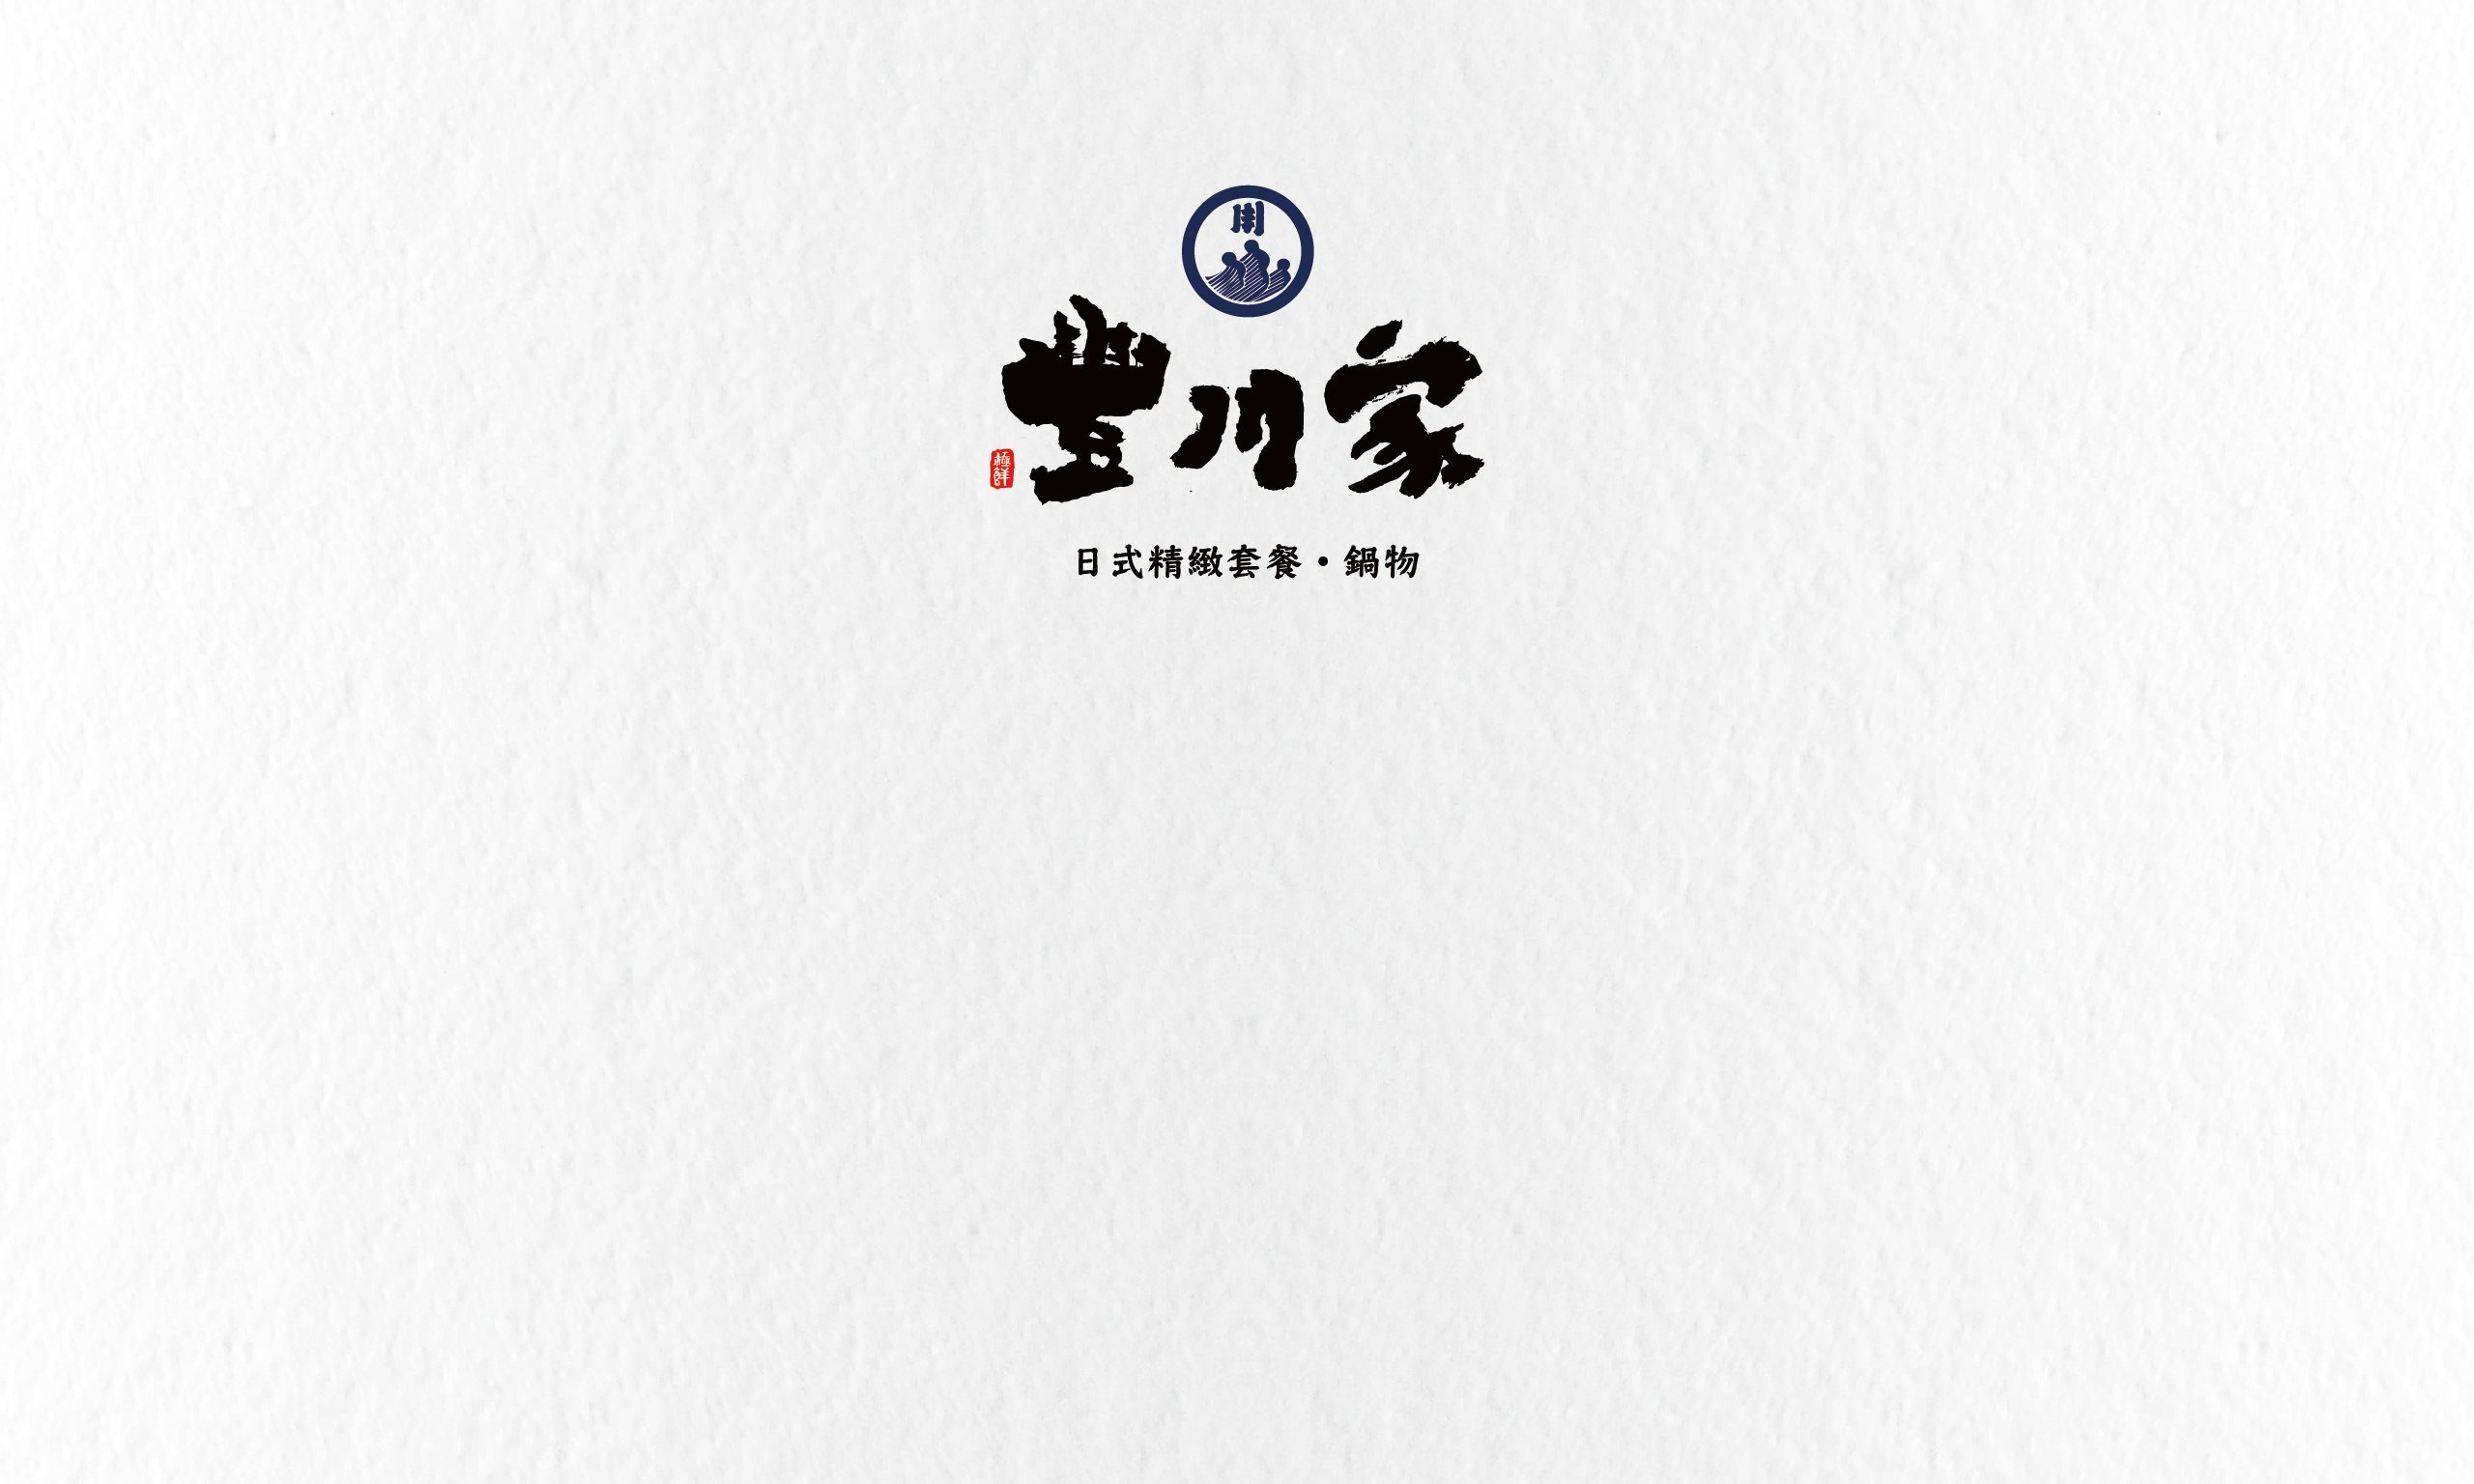 Corporate Identity System of  Feng-Chuan Family - Taiwan brand design